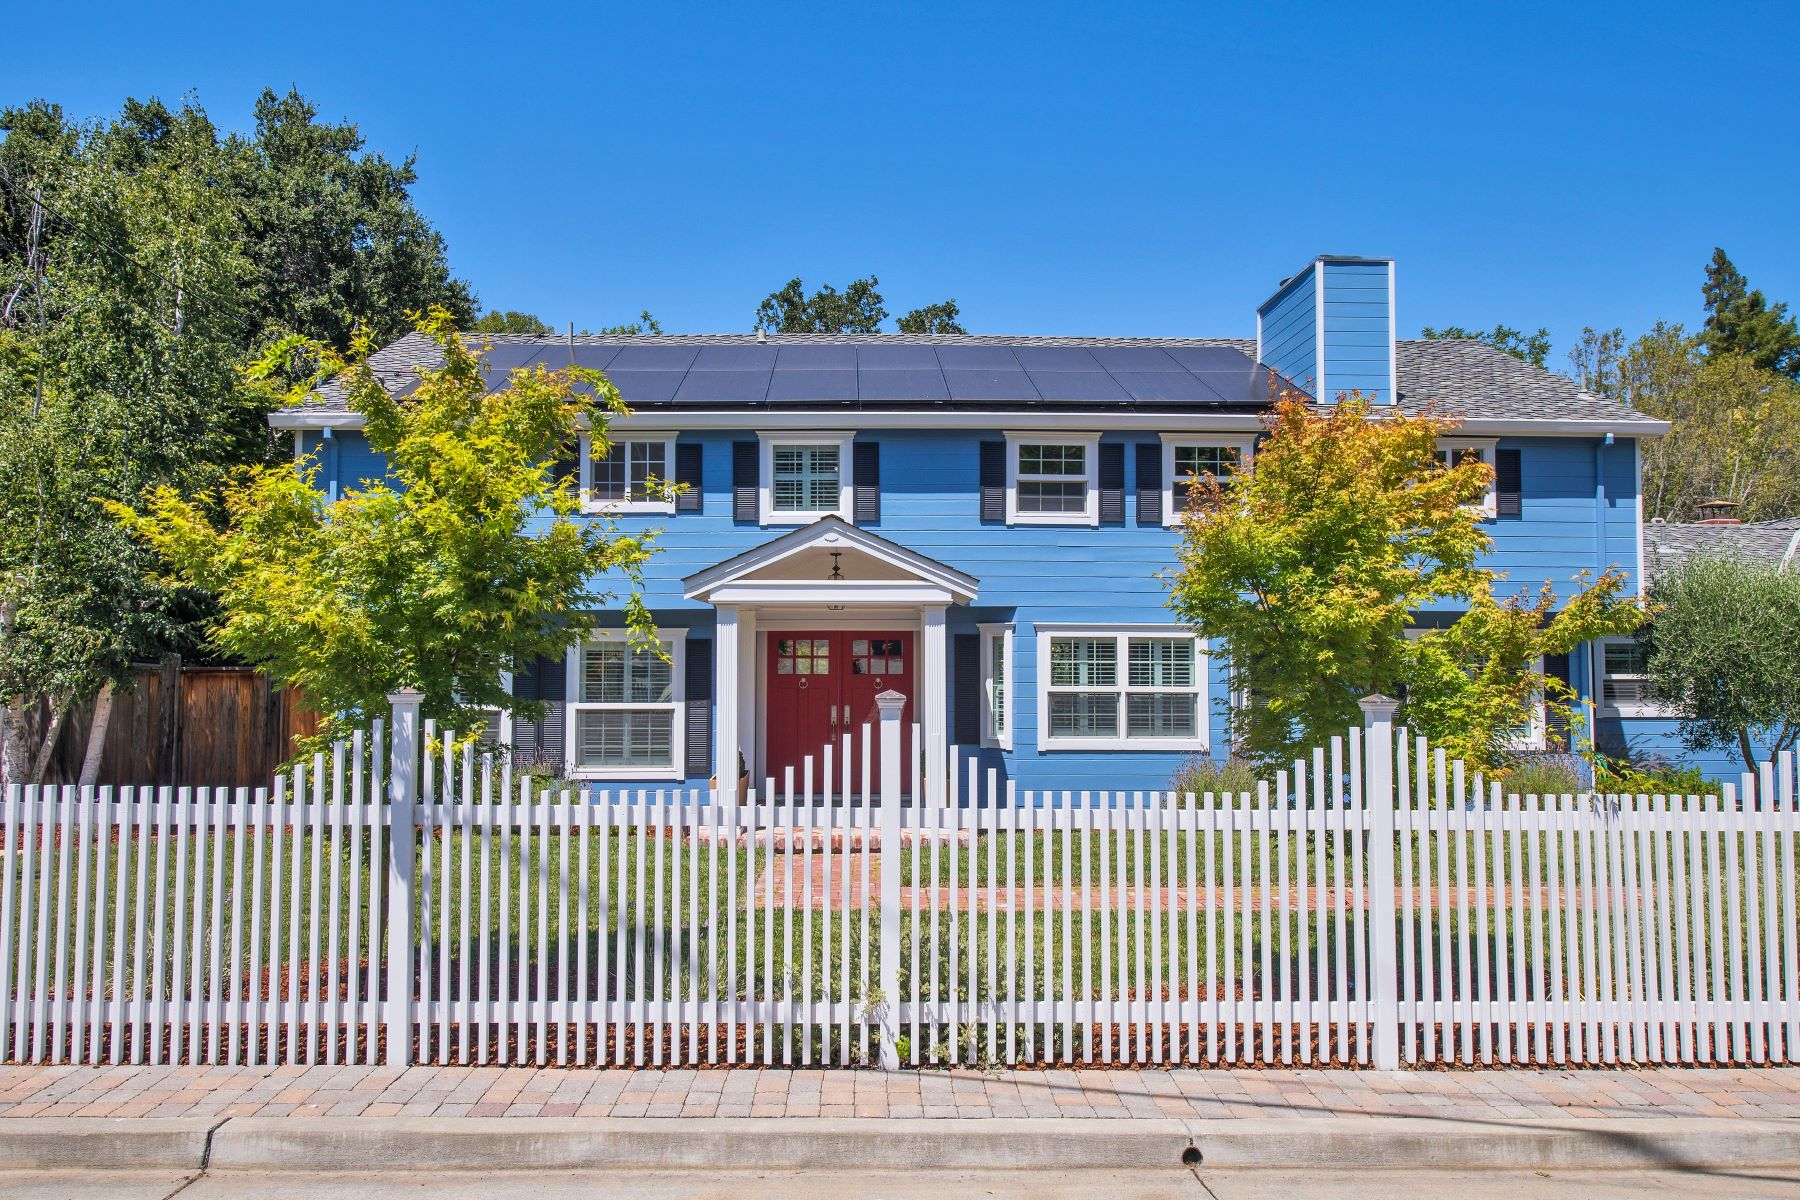 Single Family Homes のために 売買 アット Remodeled Colonial in Sleepy Hollow 15 Dutch Valley Lane, San Anselmo, カリフォルニア 94956 アメリカ